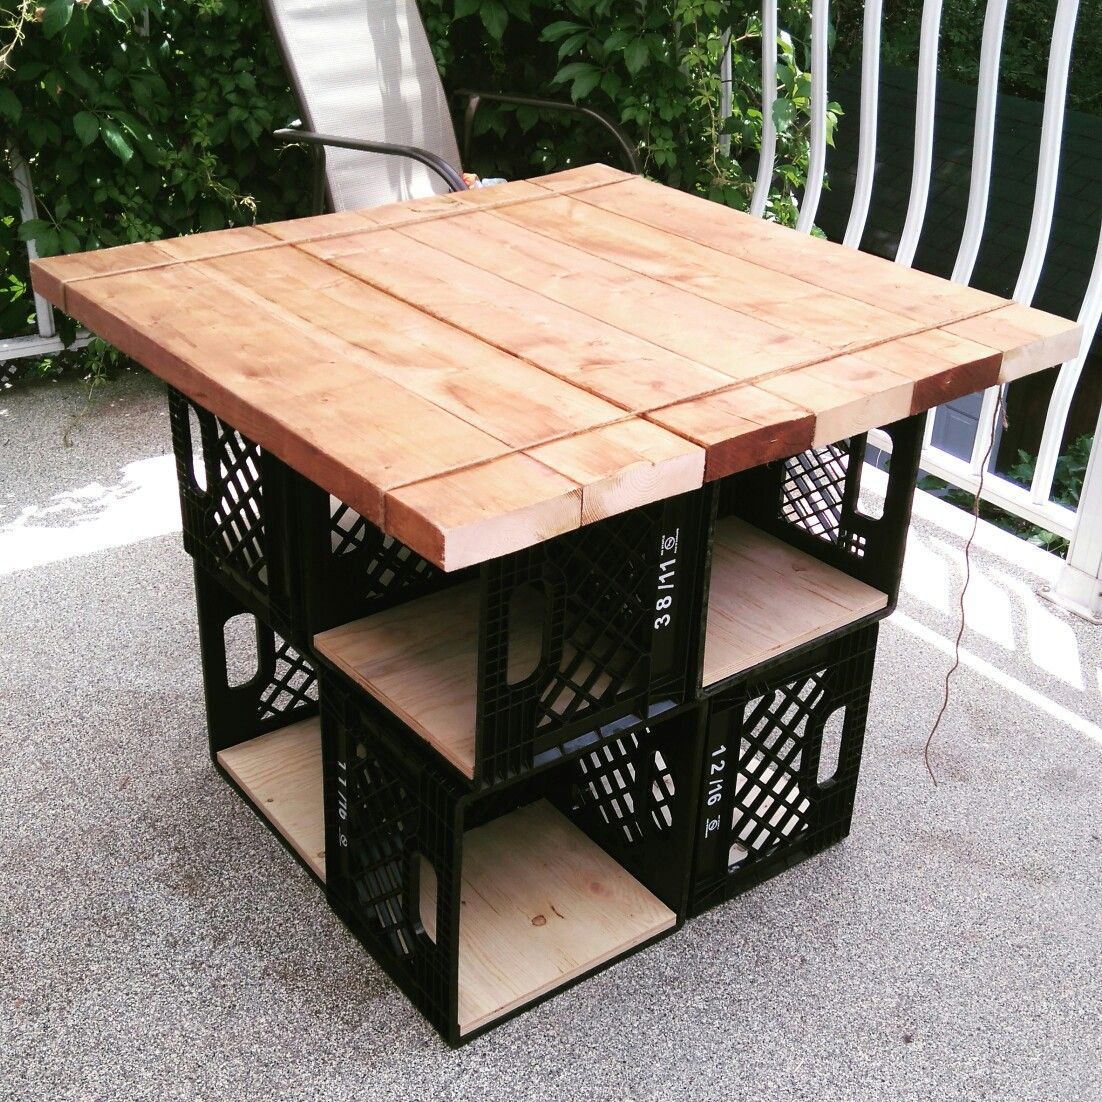 Bierkasten Bank Milk Crates Patio Table With Storage Lakberendezési